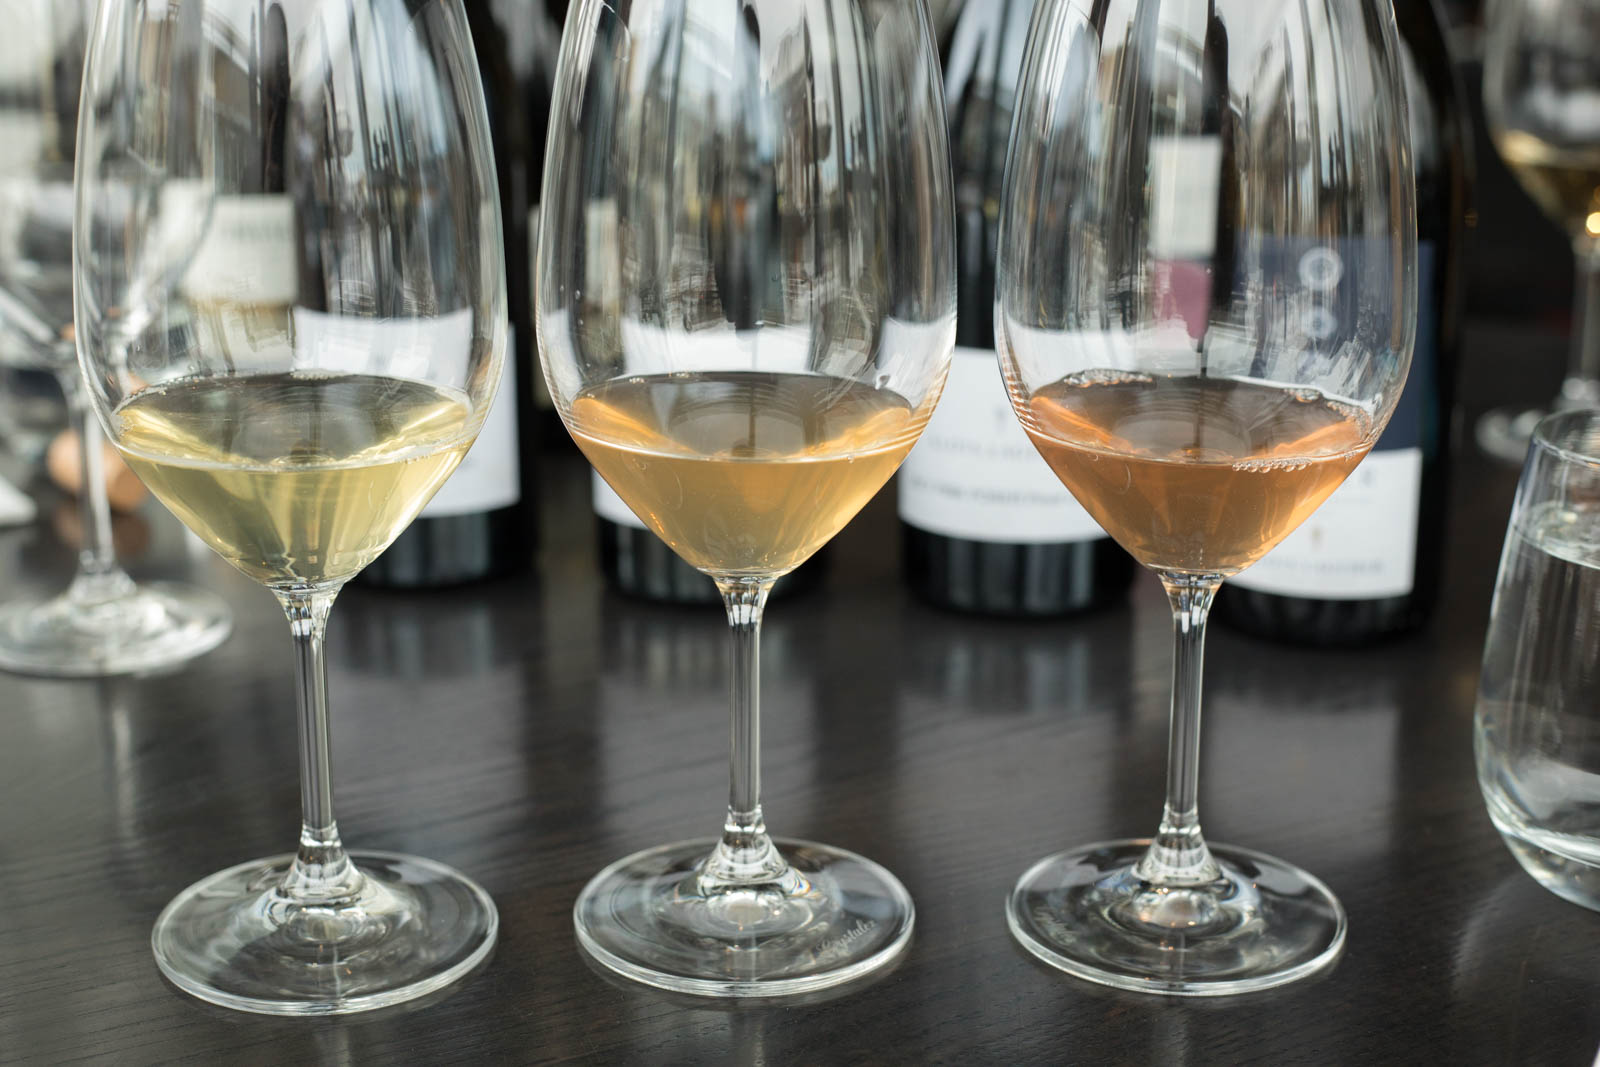 Three different Pinot Grigio from Alois Lageder. ©Kevin Day/Opening a Bottle